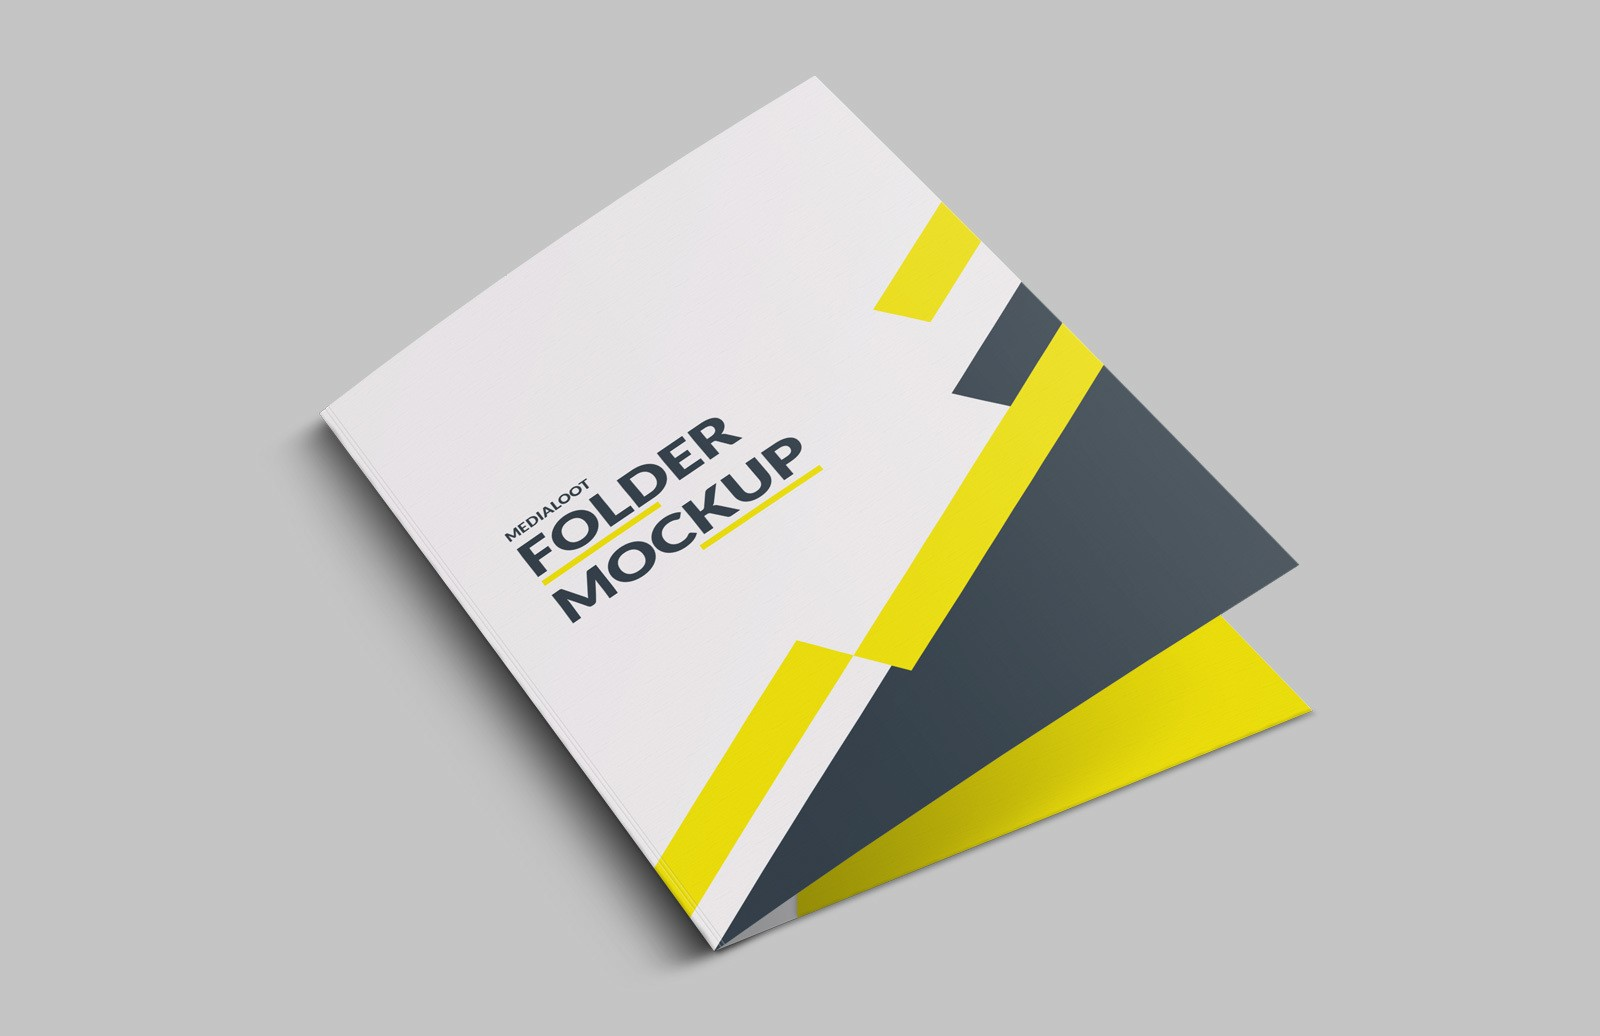 Folder Mockup for Photoshop